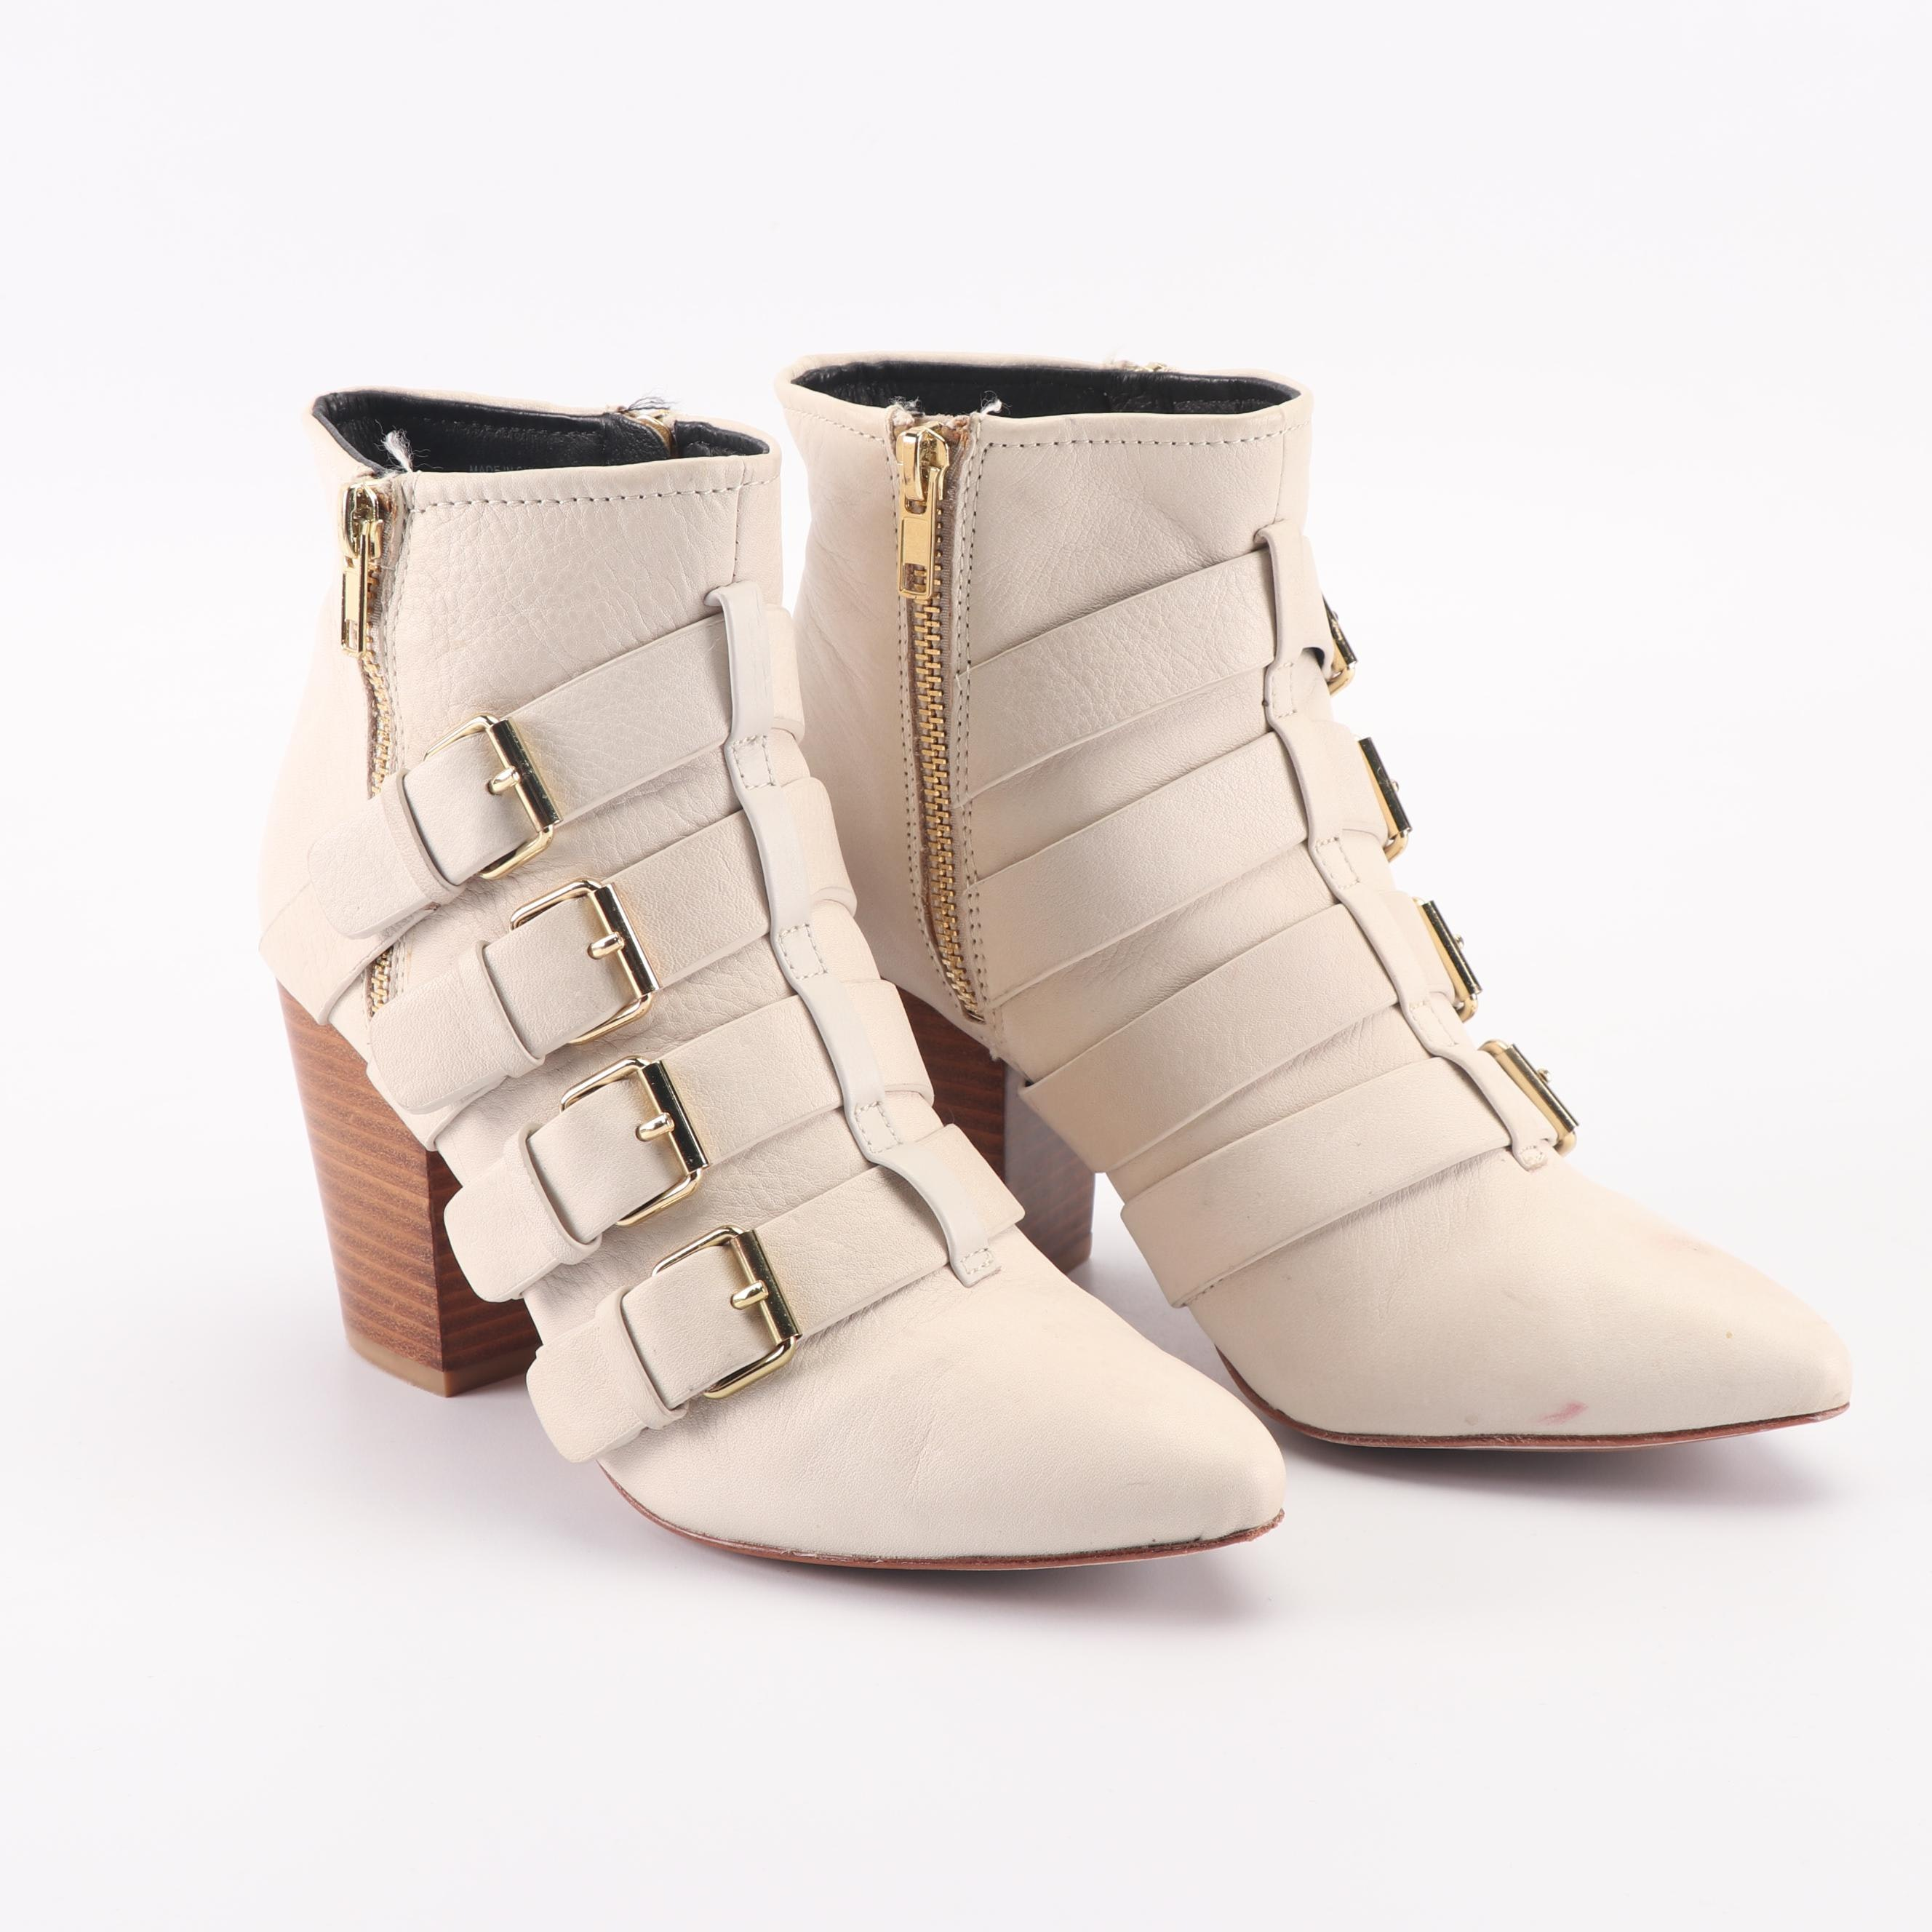 Rebecca Minkoff Off-White Leather Multi-Strap Ankle Booties